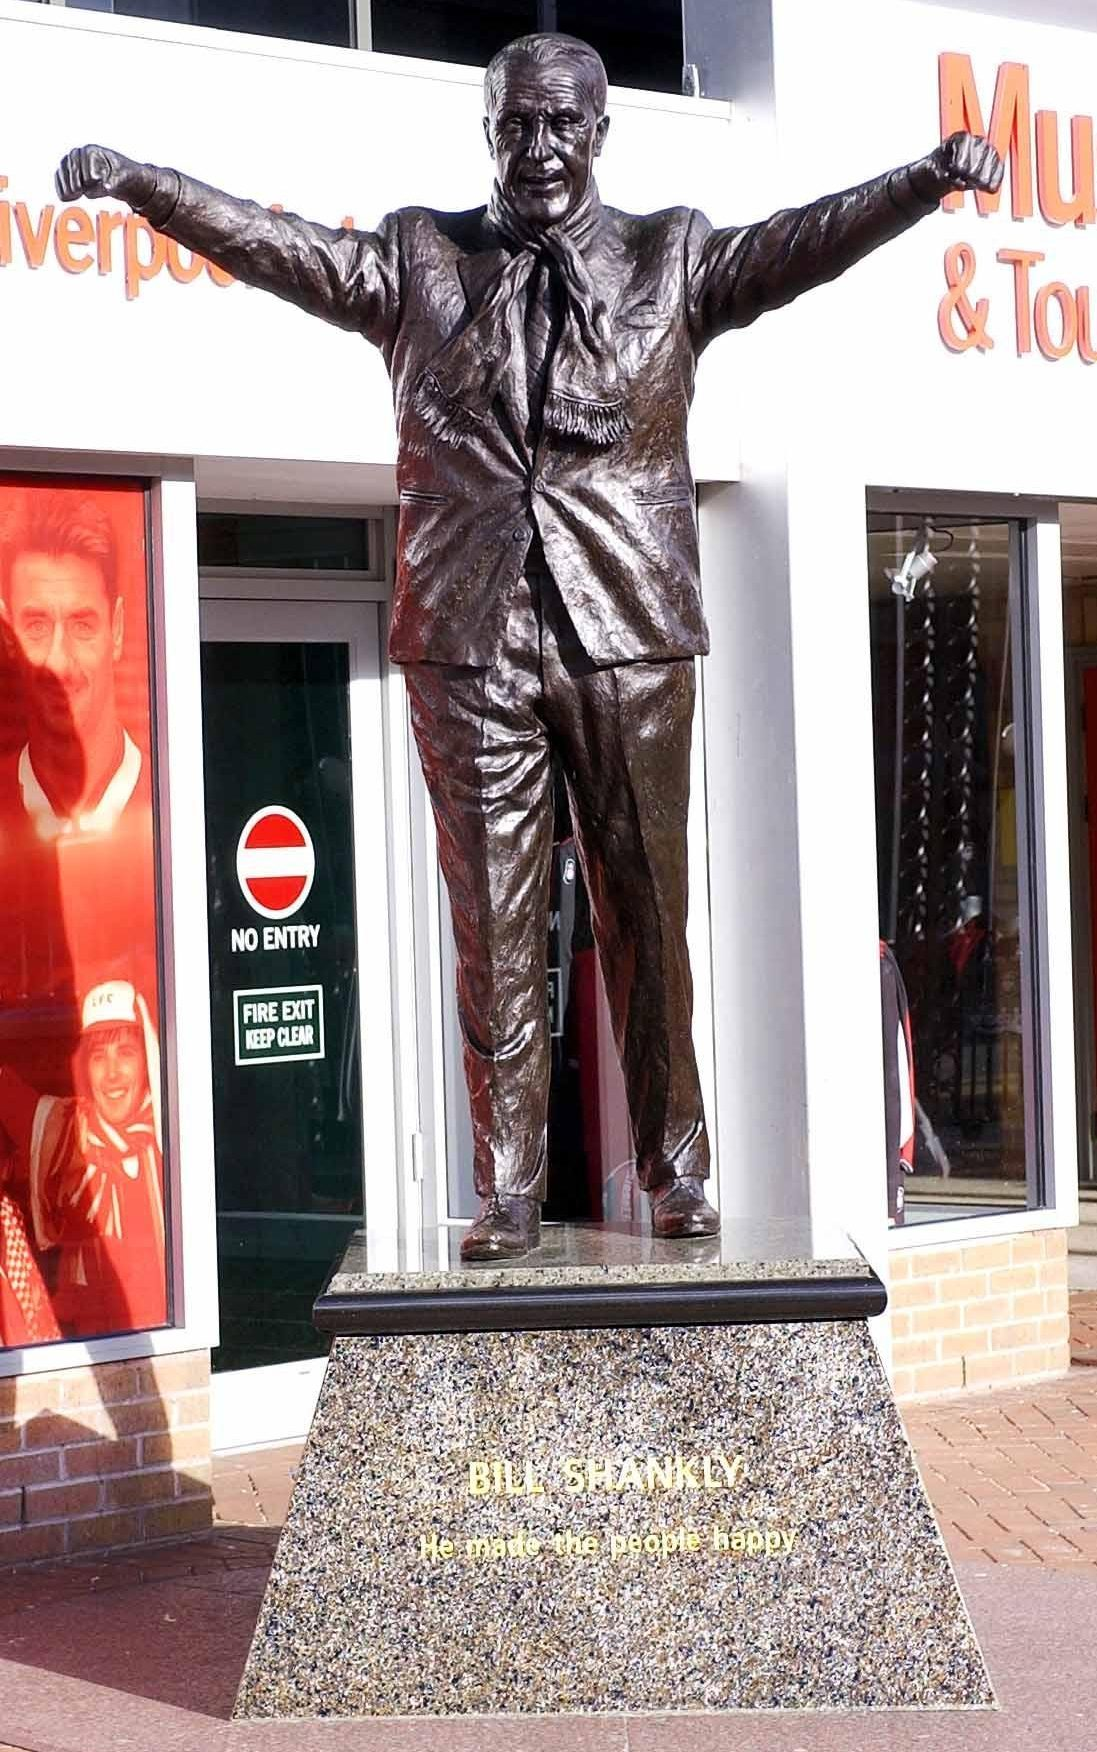 Shankly's statue greets visitors to Anfield